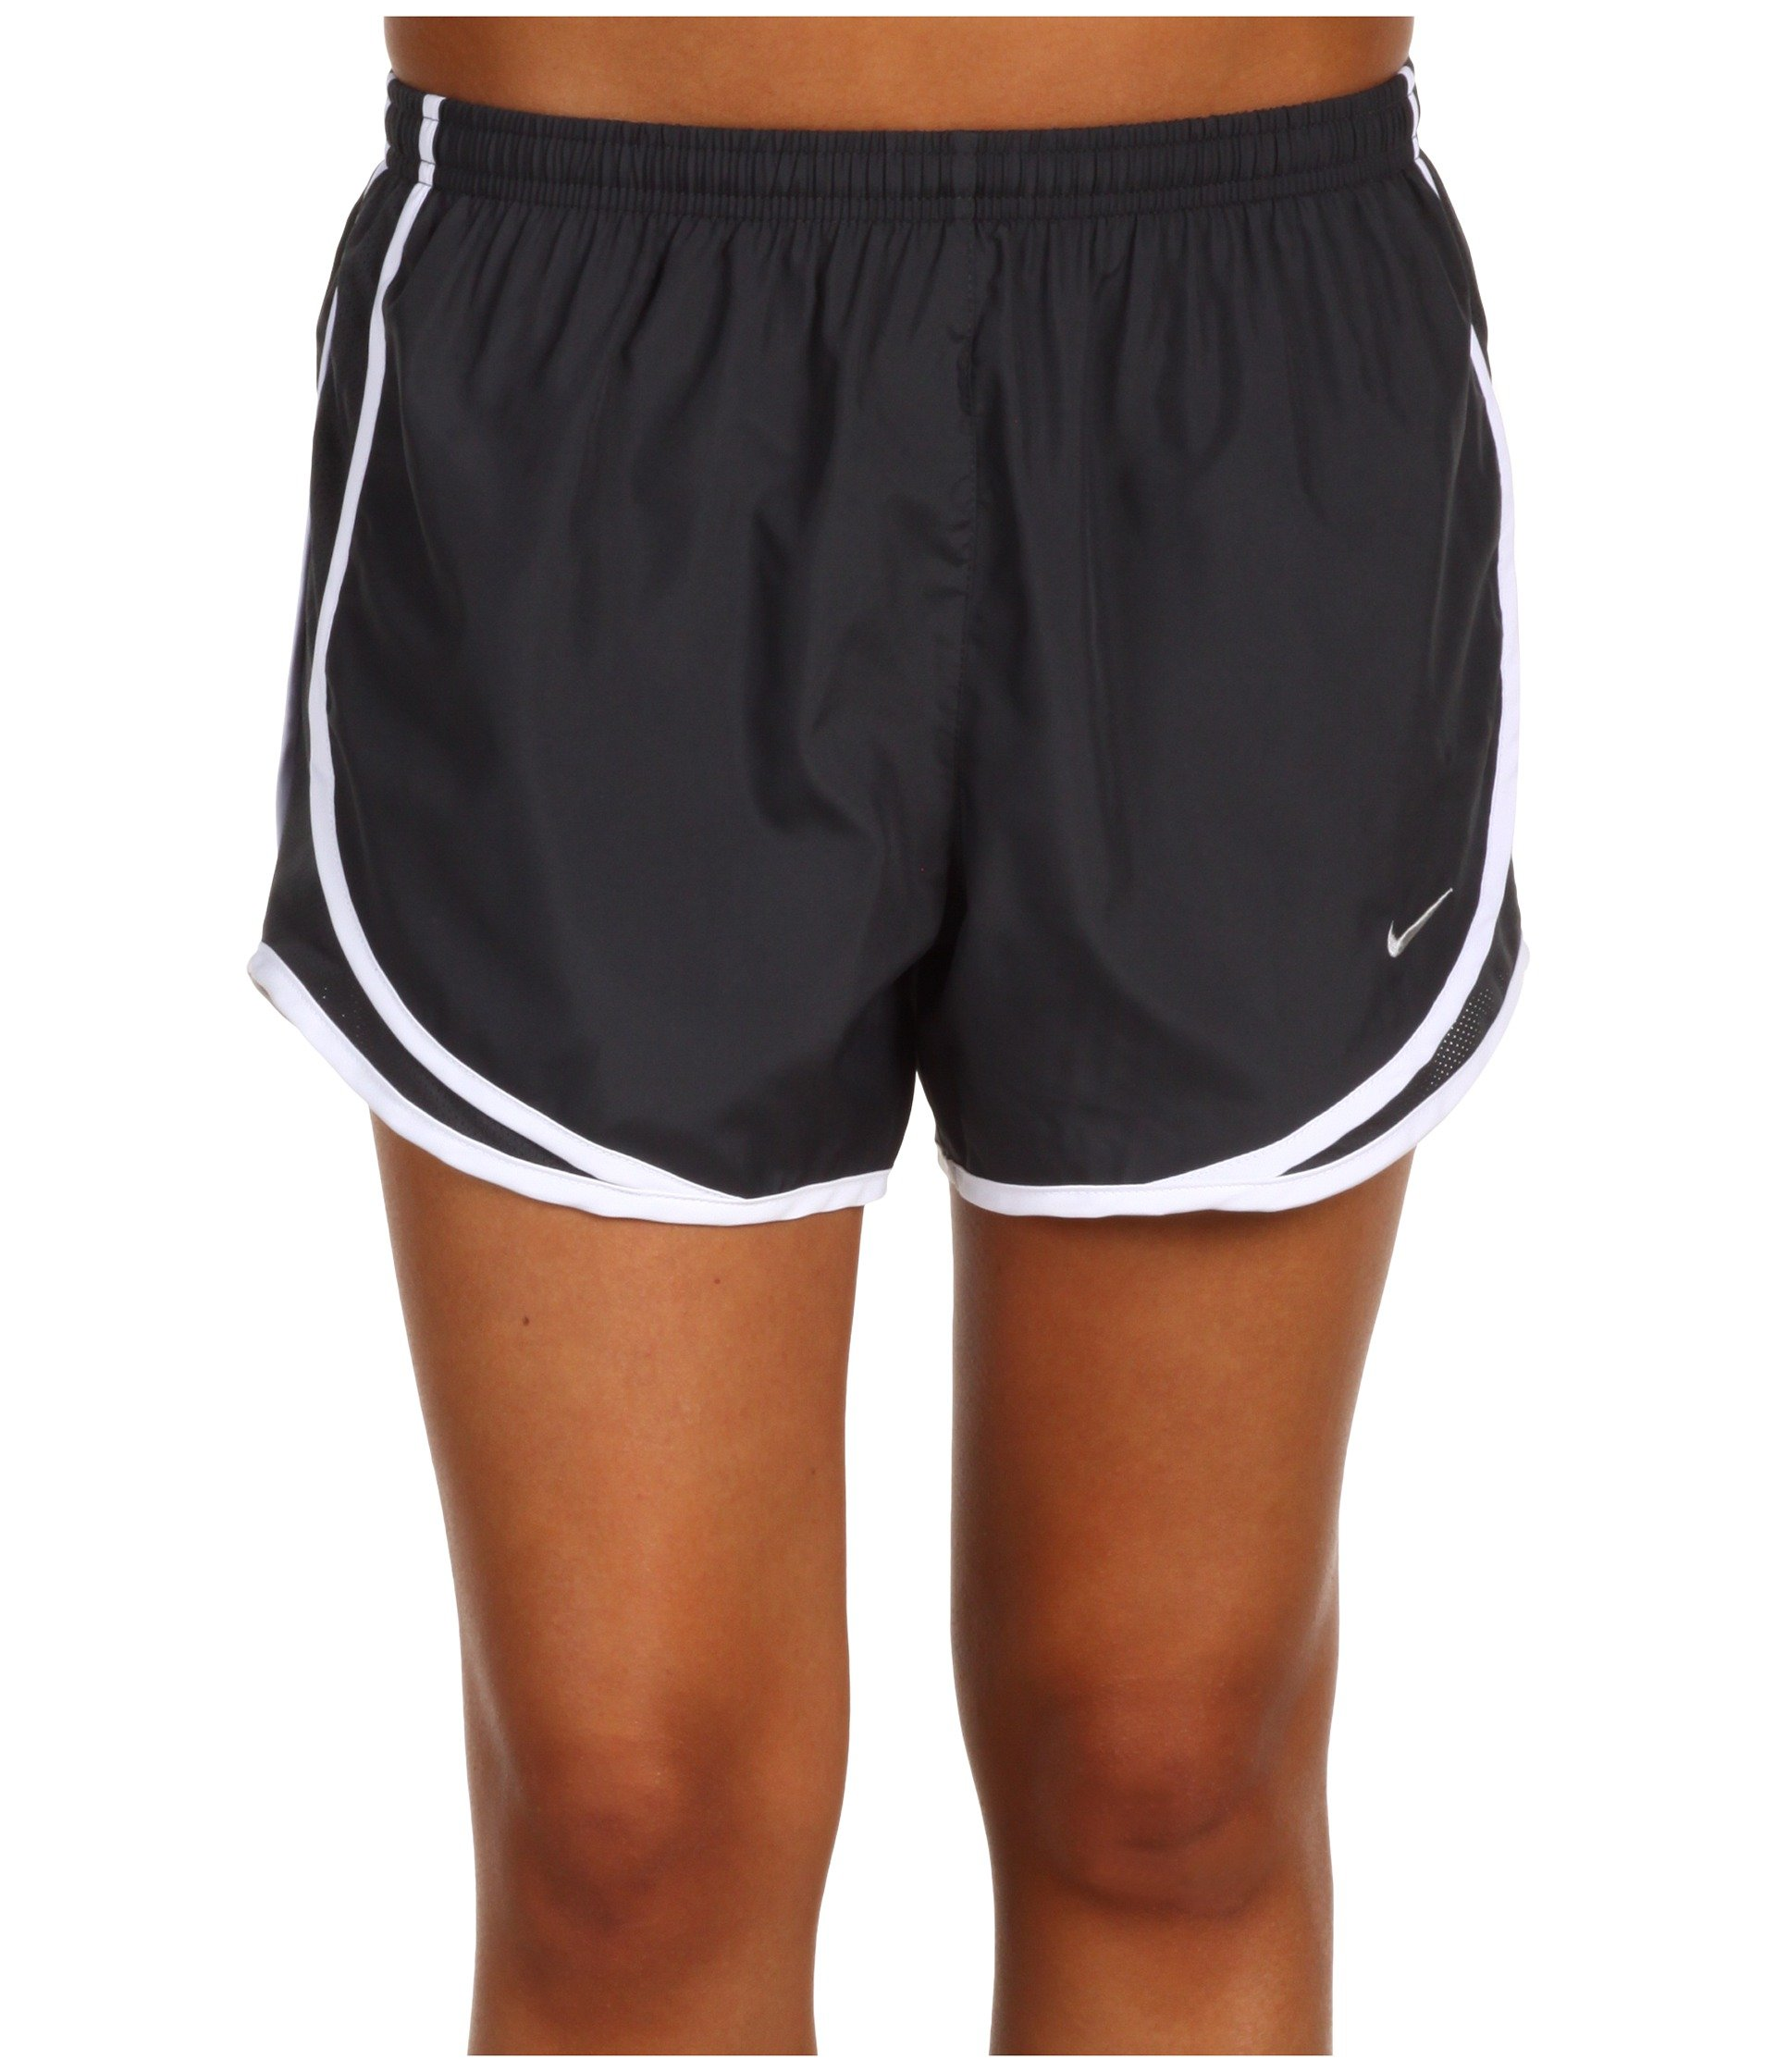 Nike Tempo Track Shorts Grey/White by Nike